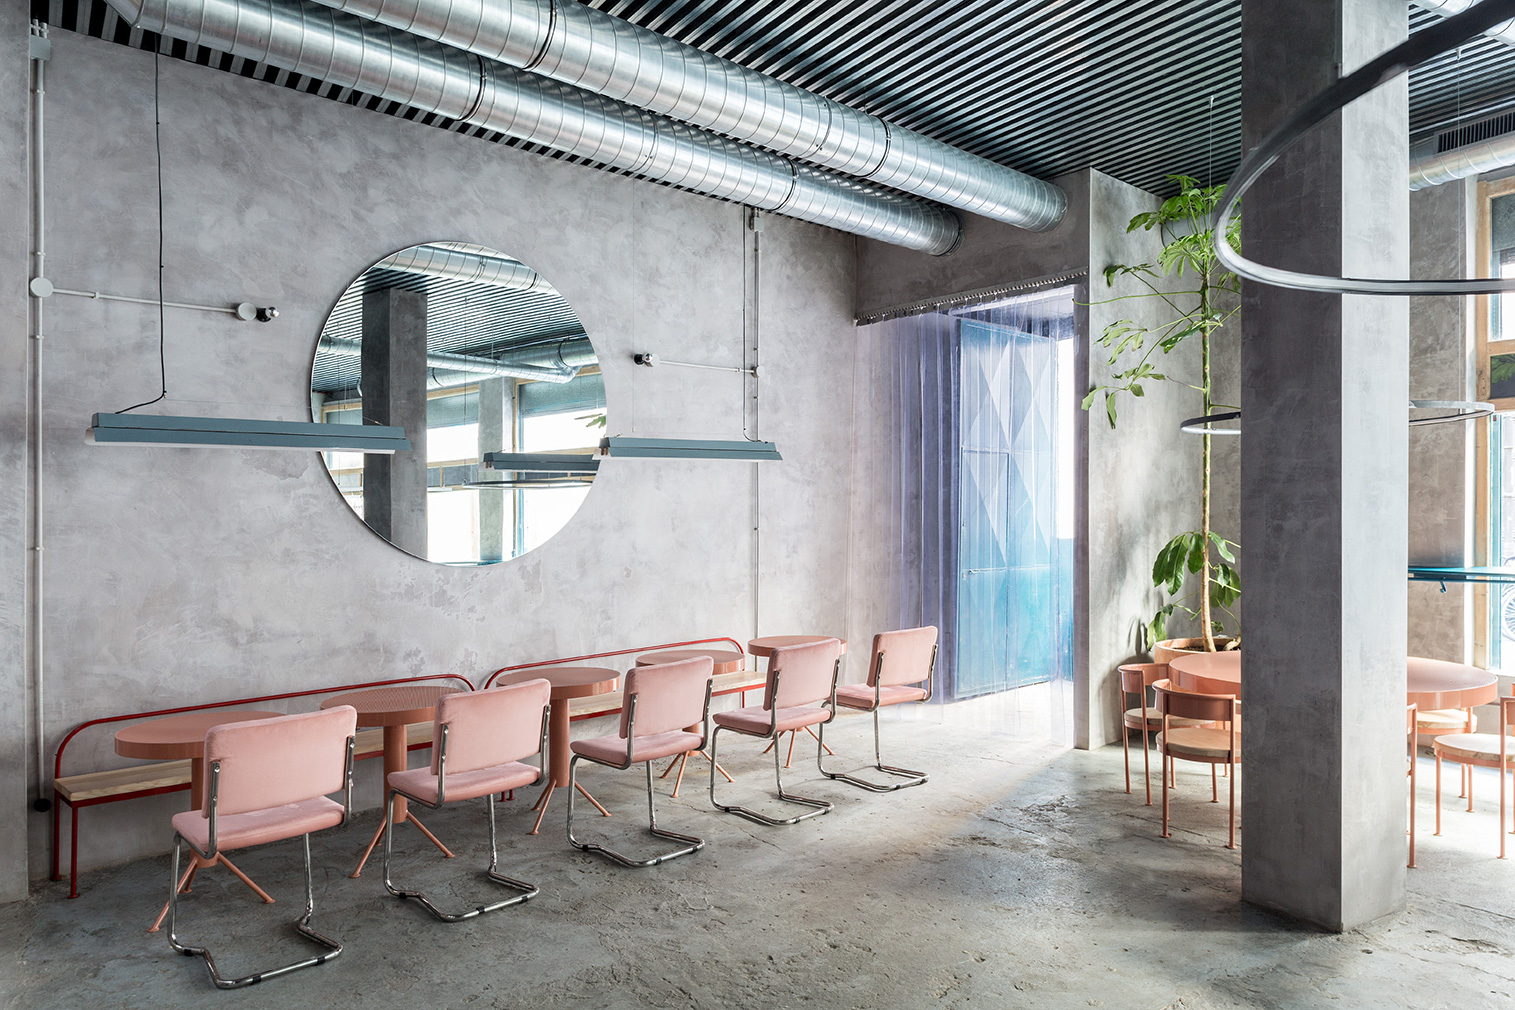 New restaurant serves up gorgeous mix of concrete, pastels, and circles